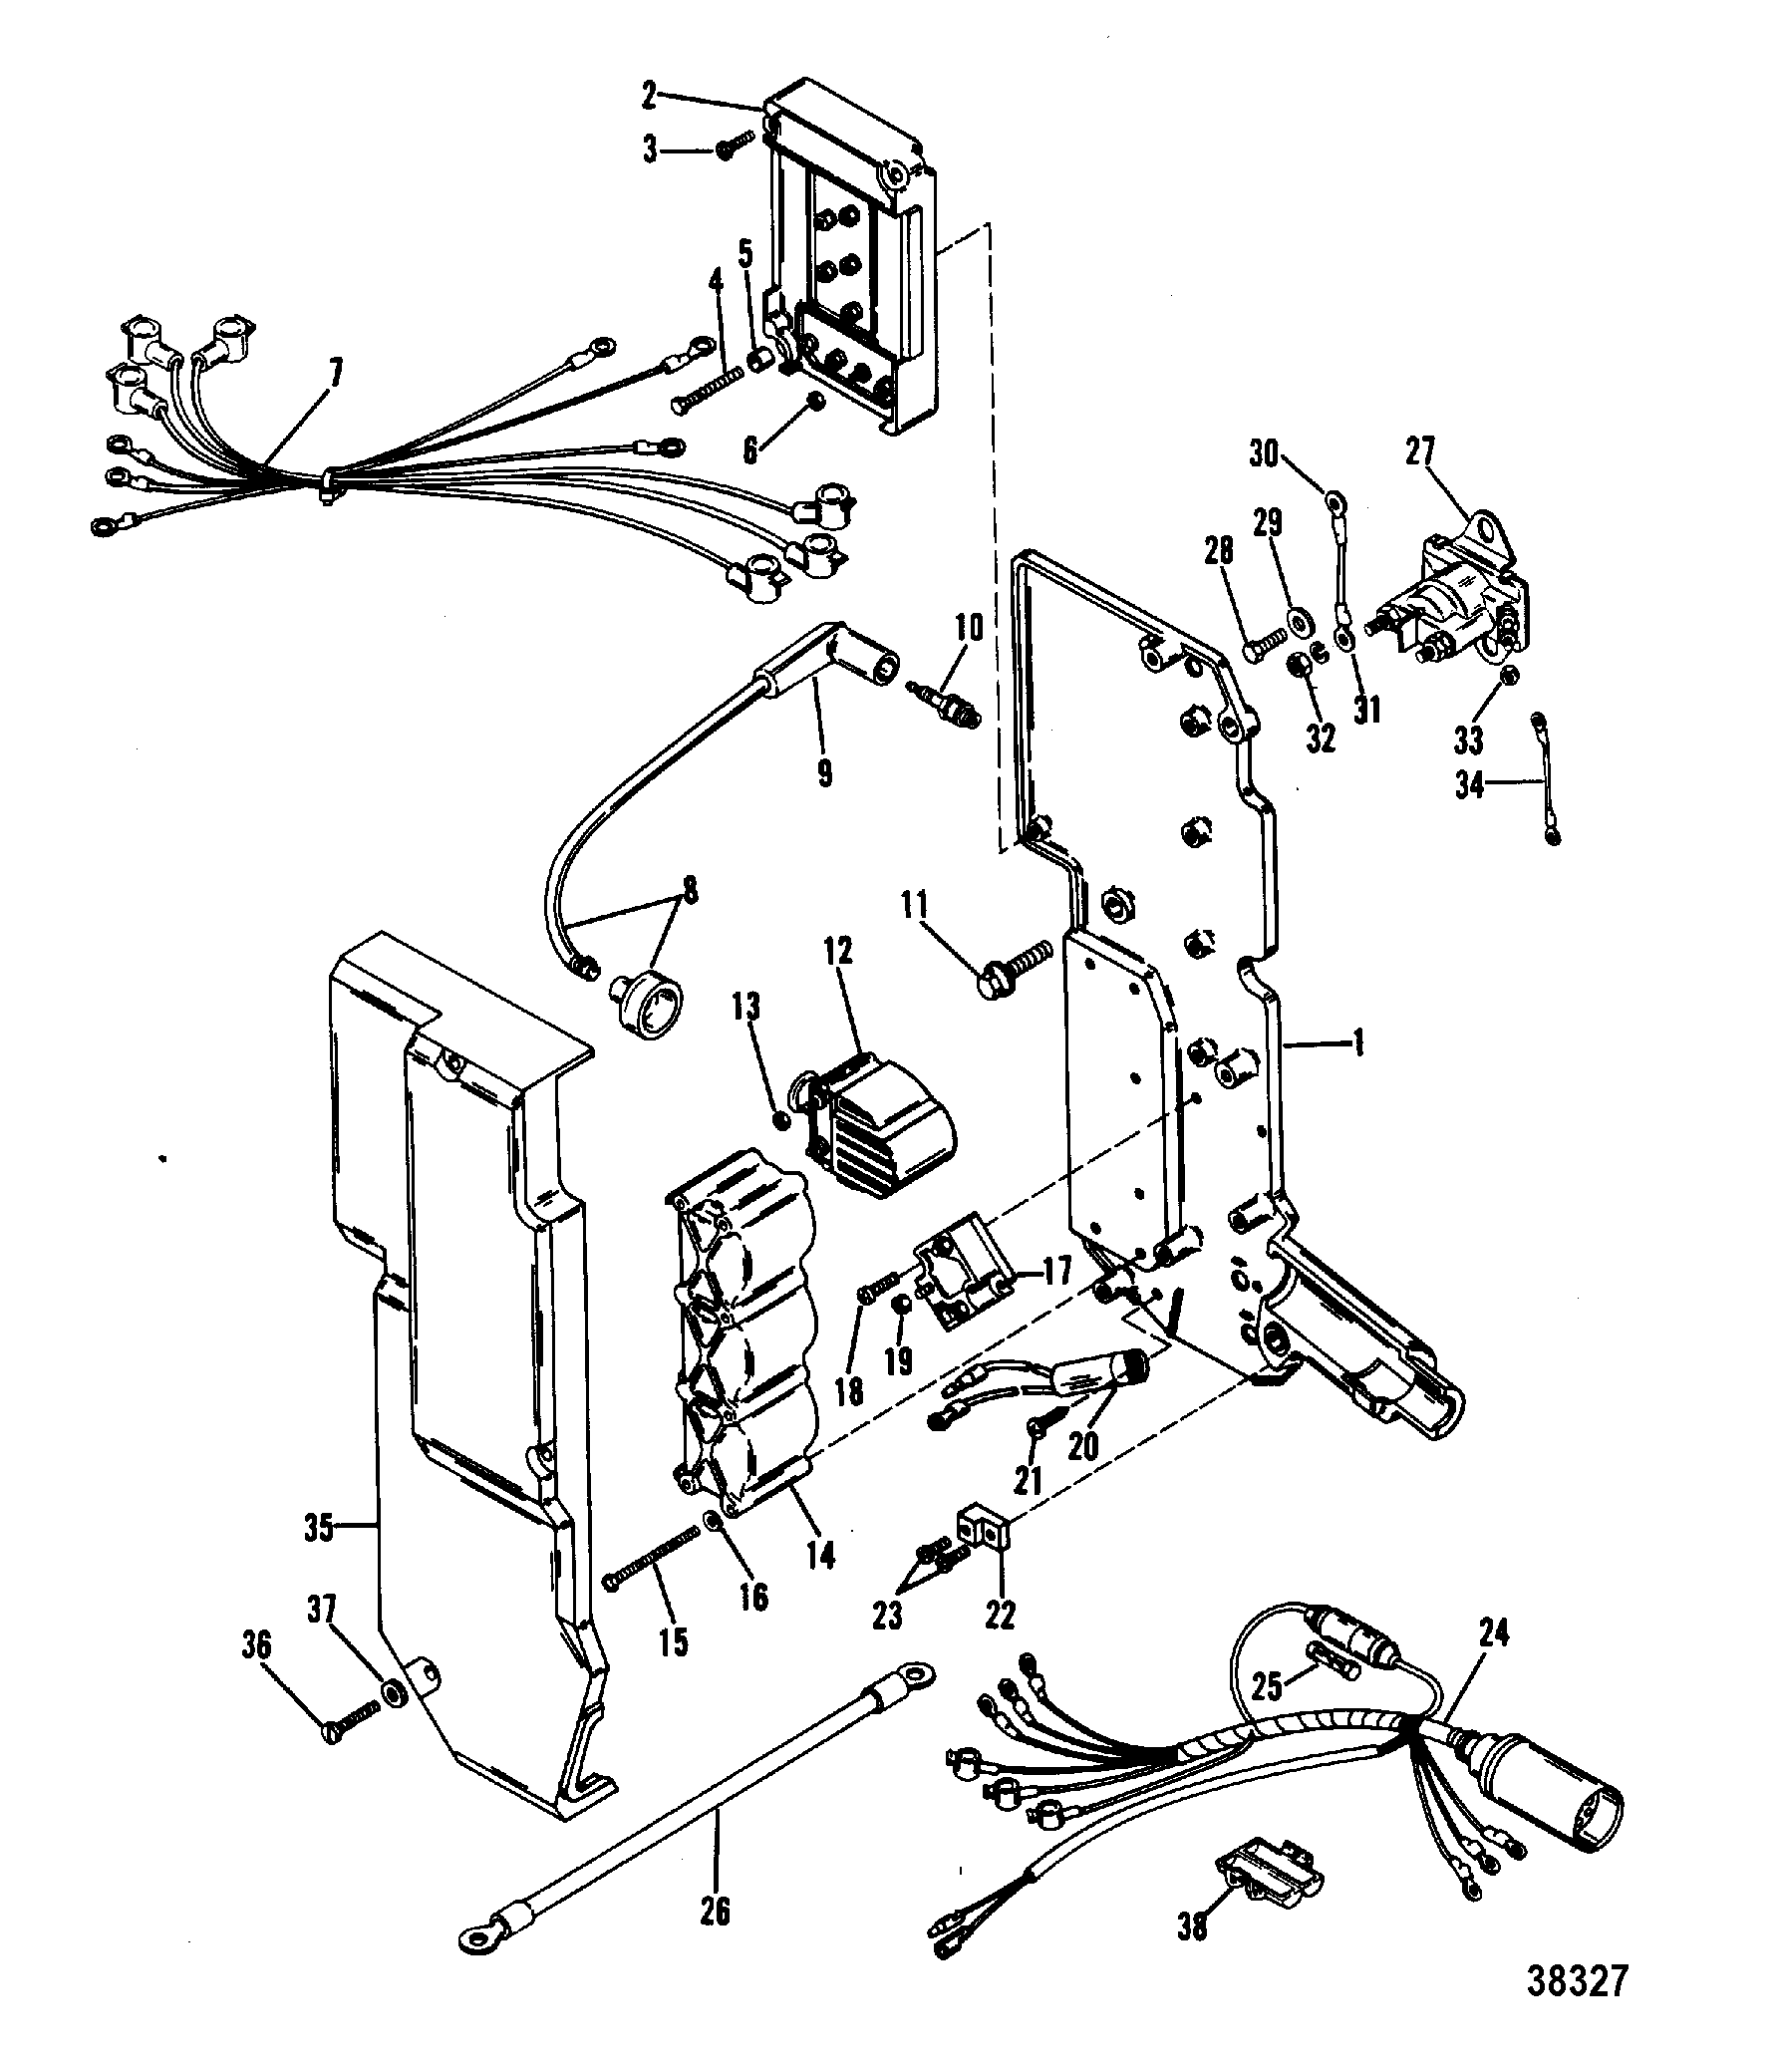 [WRG-8228] Mercury 80 Hp Outboard Wiring Diagram